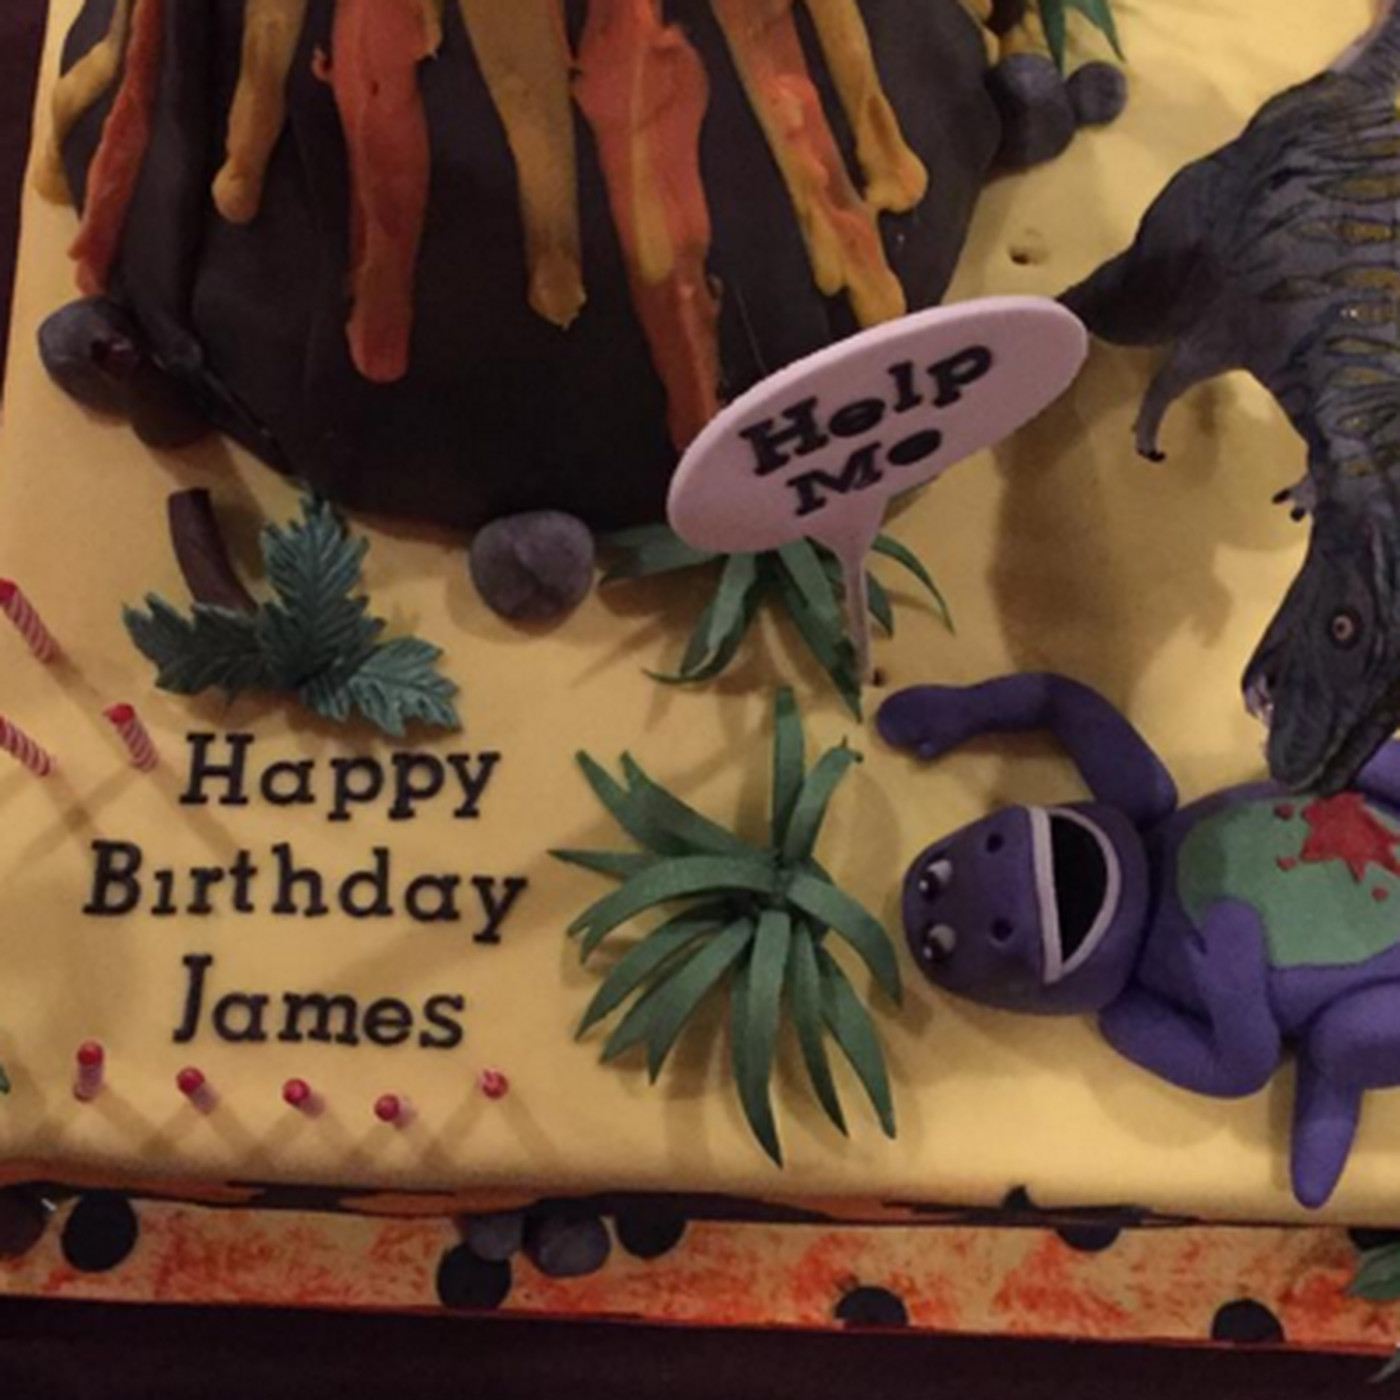 James Harrisons Sons Birthday Cake Featured A Cannibal Dinosaur Eating Barney